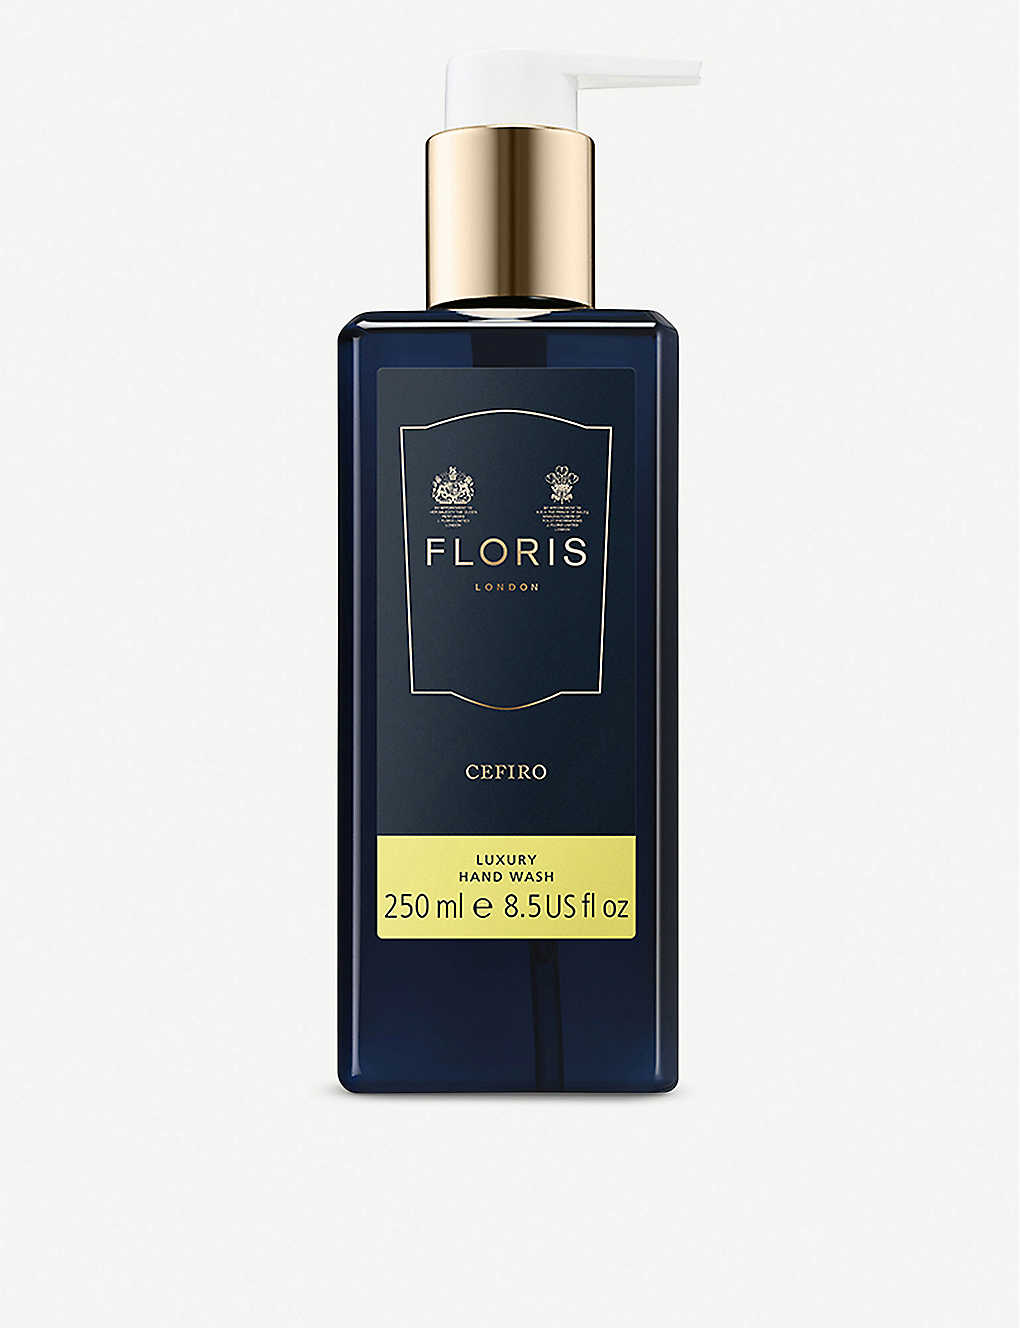 FLORIS: Cefiro luxury hand wash 250ml